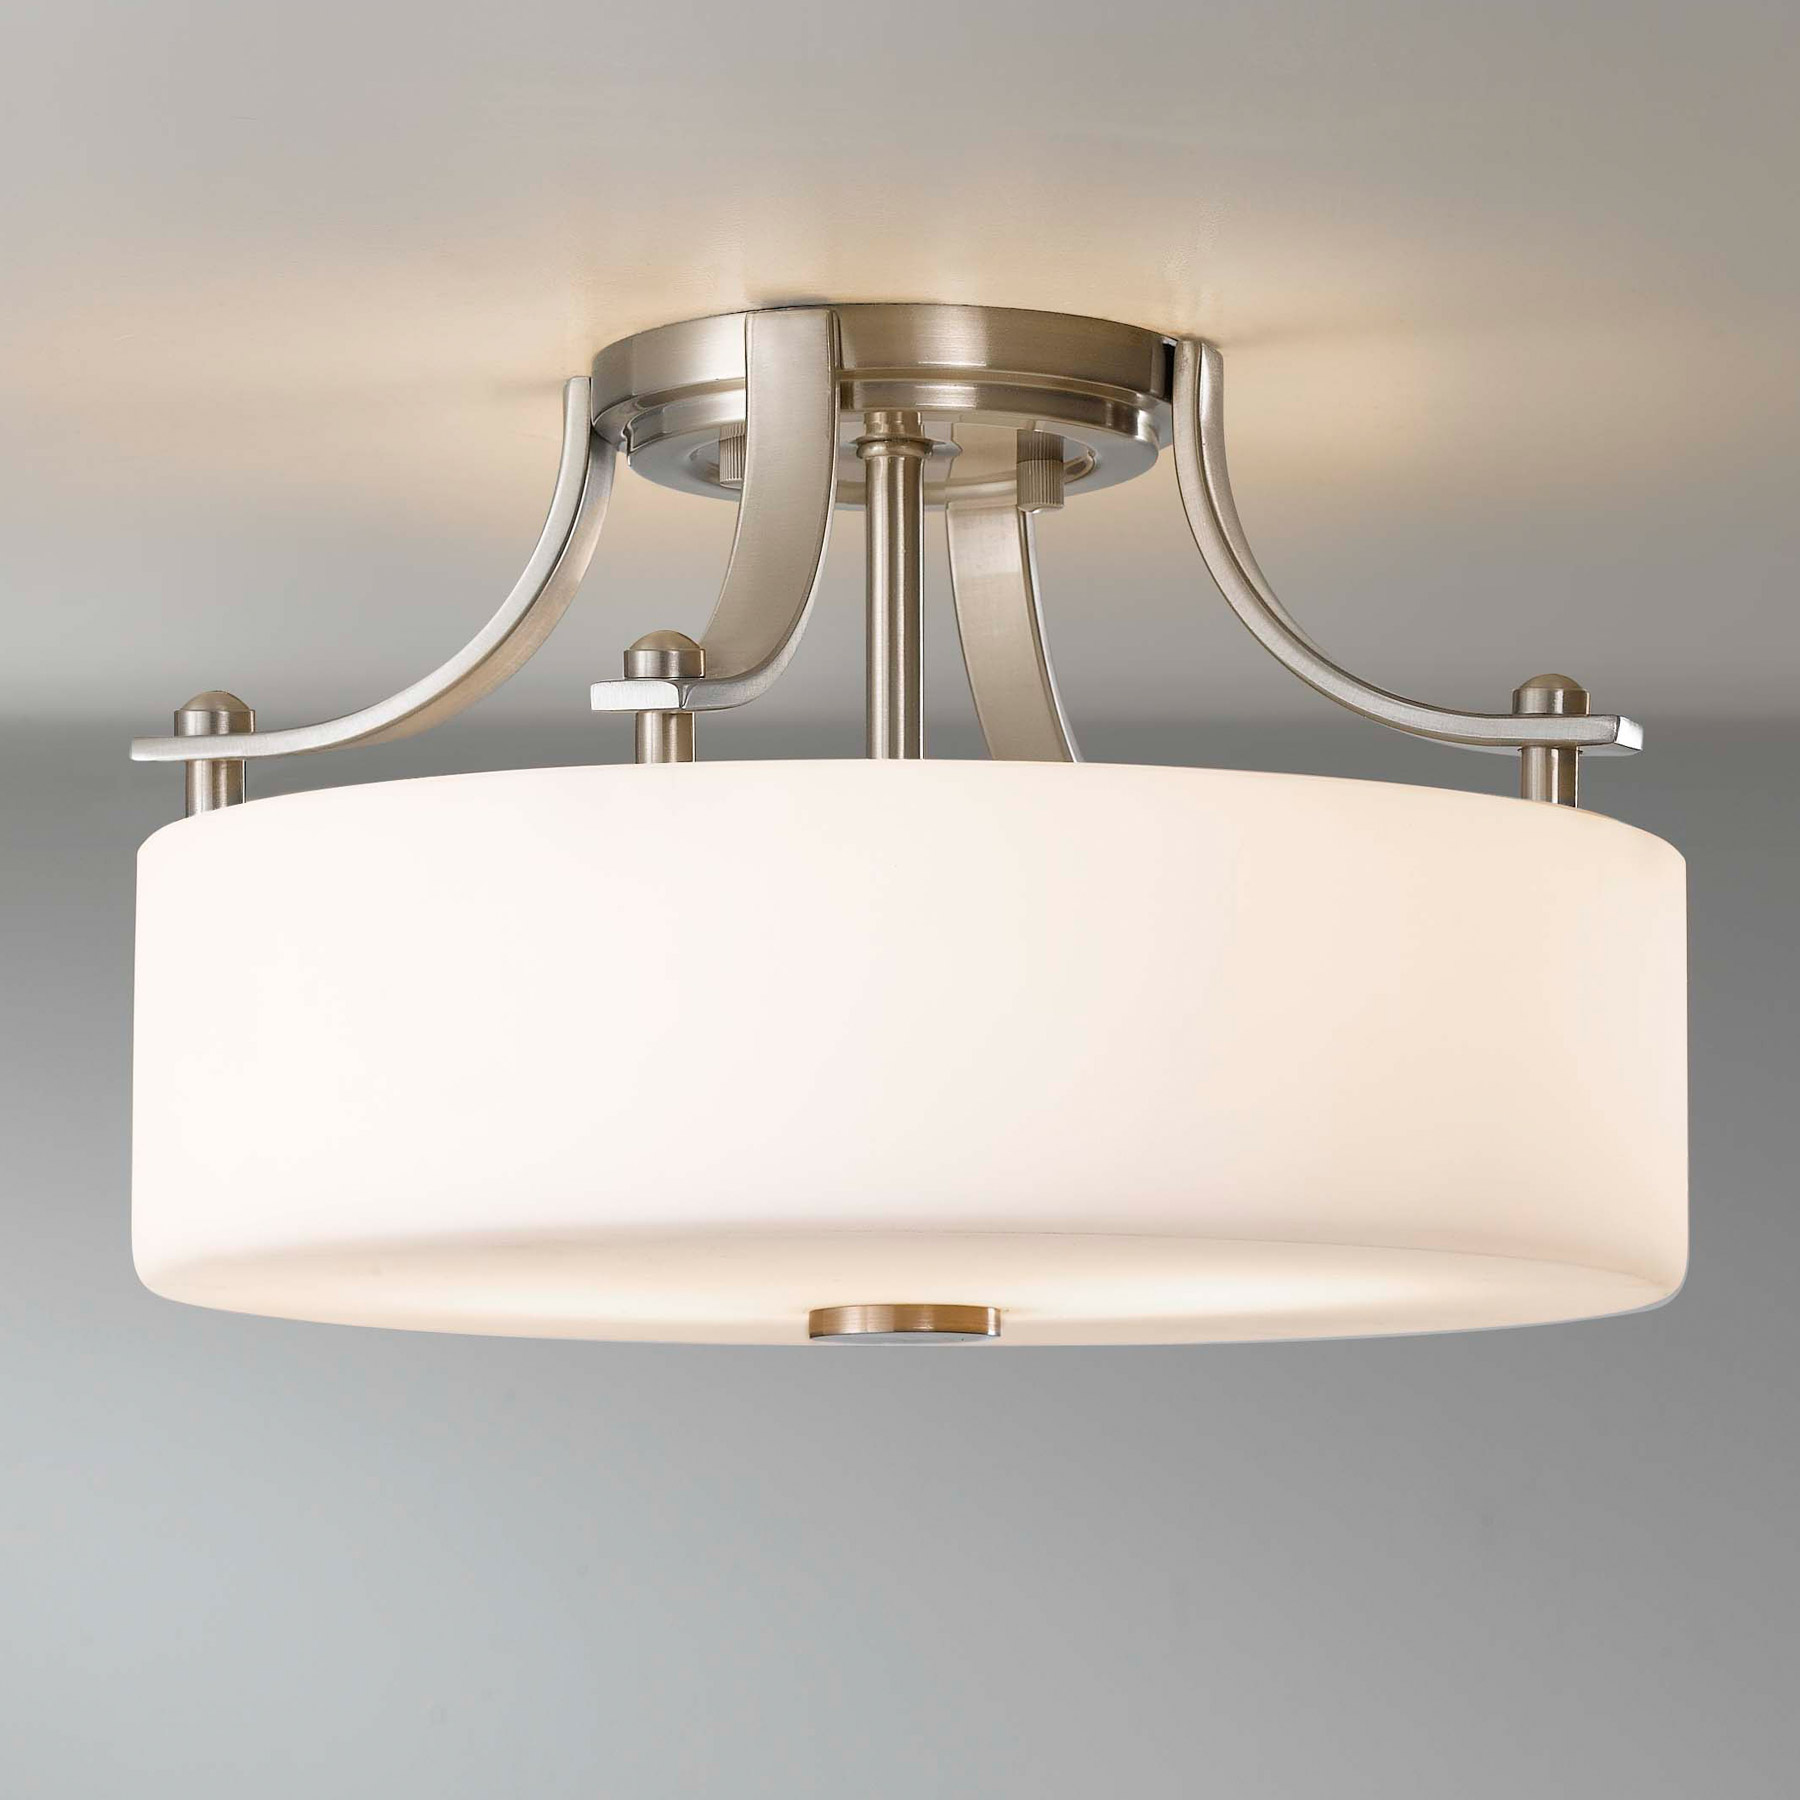 Murray Feiss SF259BS Sunset Drive Semi-Flush Ceiling Fixture